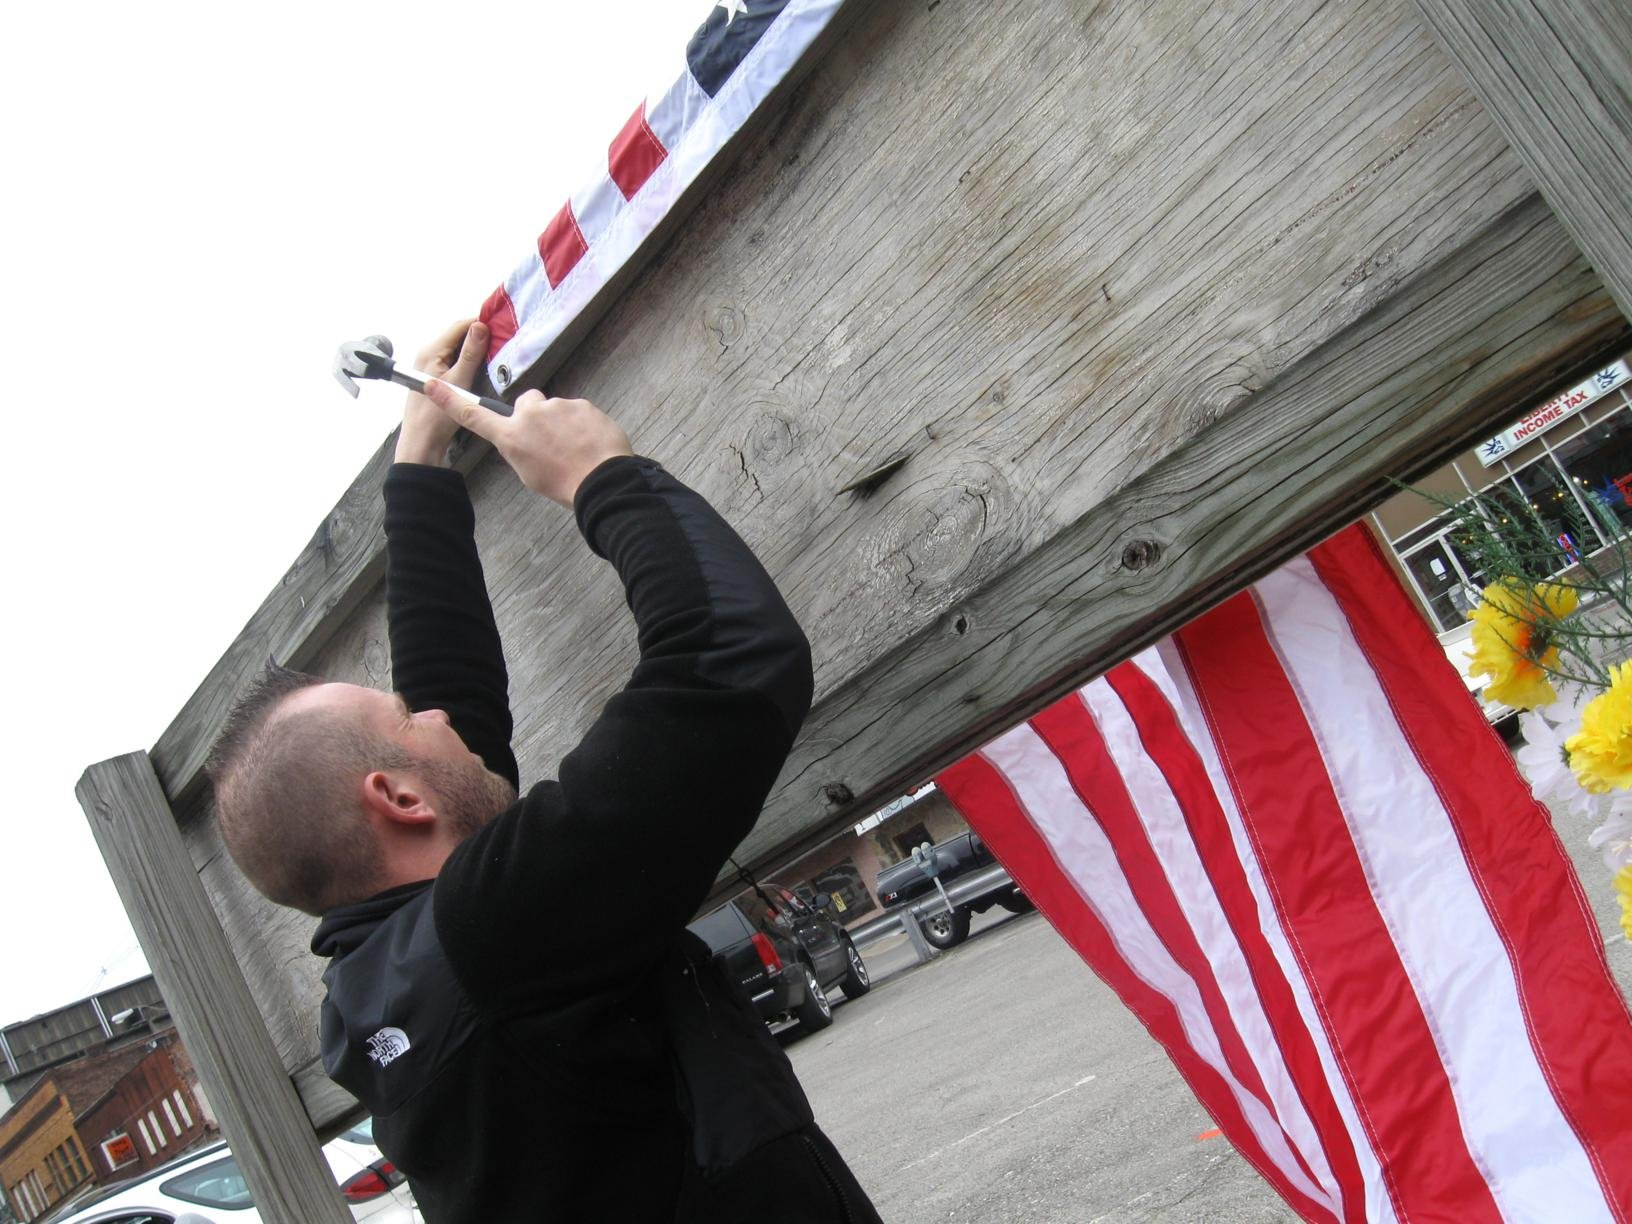 Nathan Lamere hung a flag in honor of Crum.